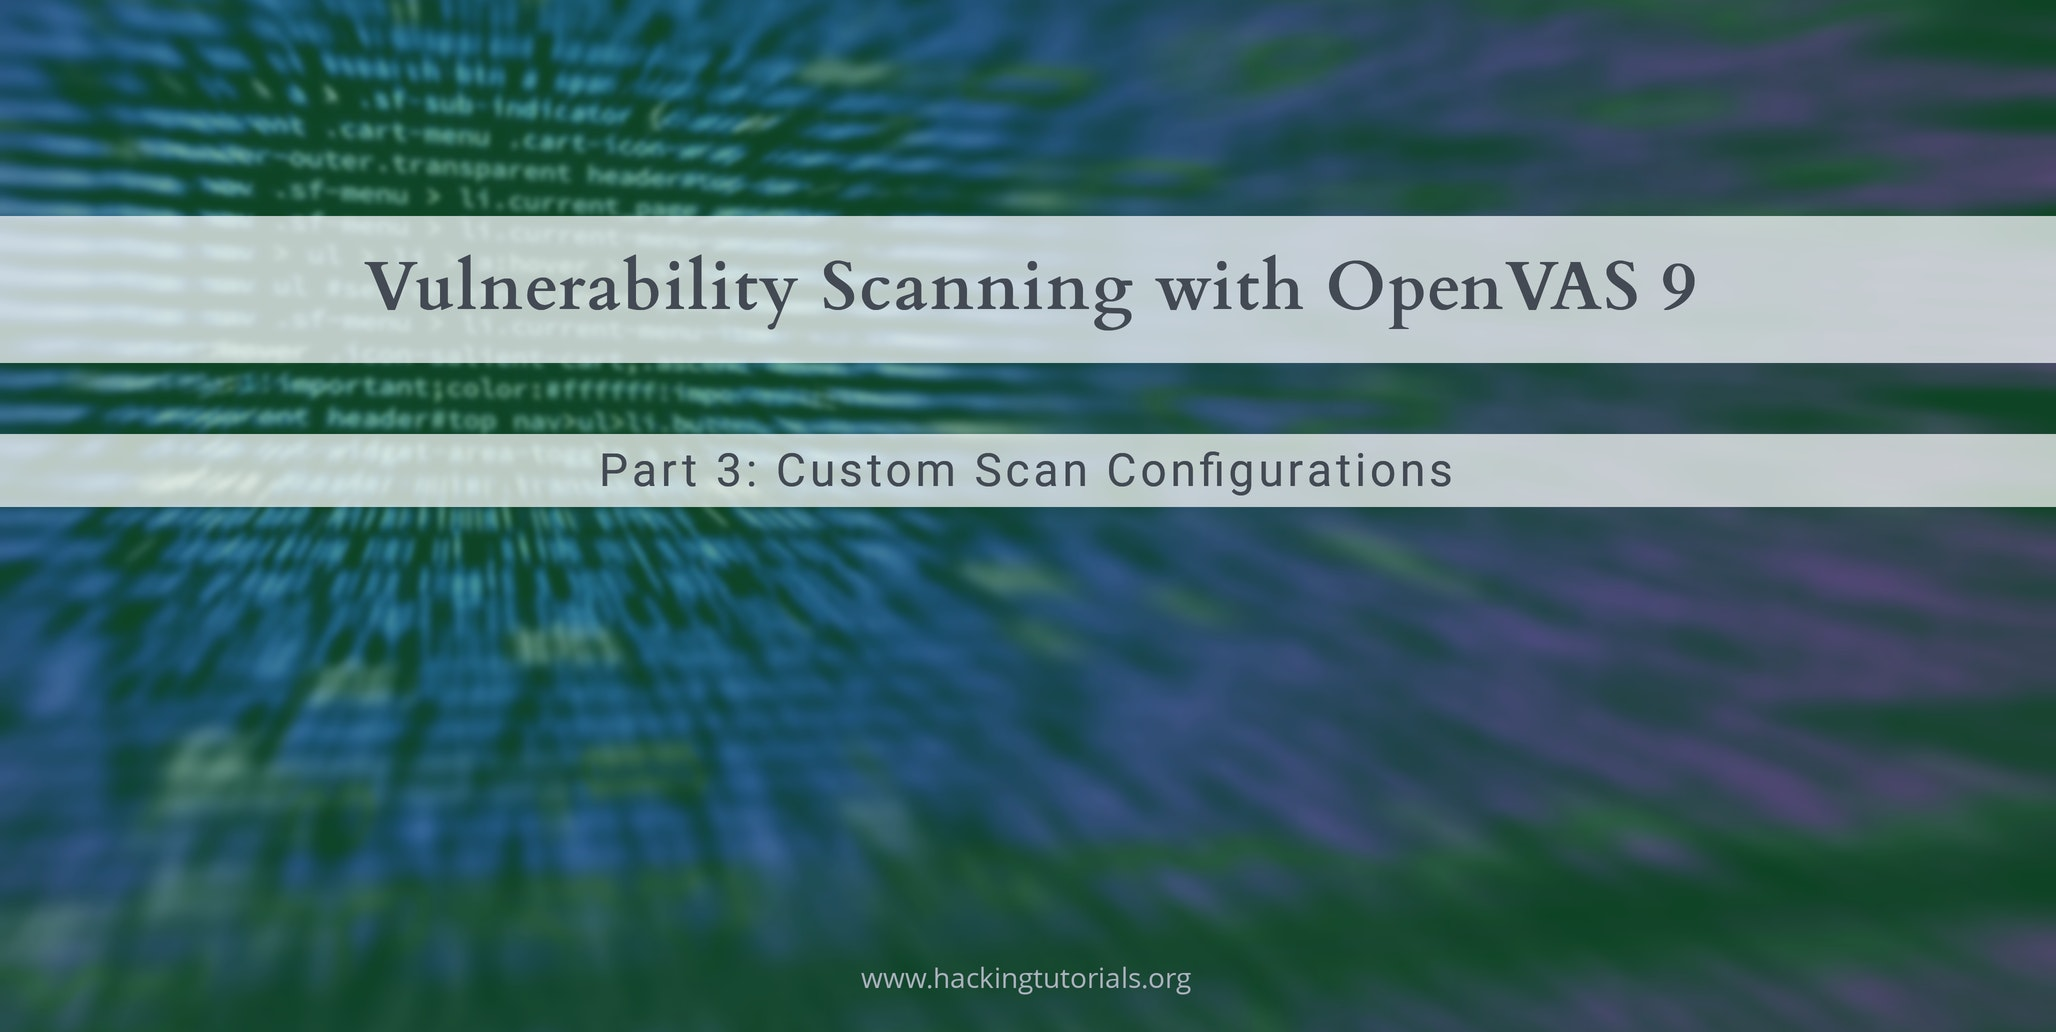 Vulnerability Scanning with OpenVAS 9 part 3: Scanning the Network